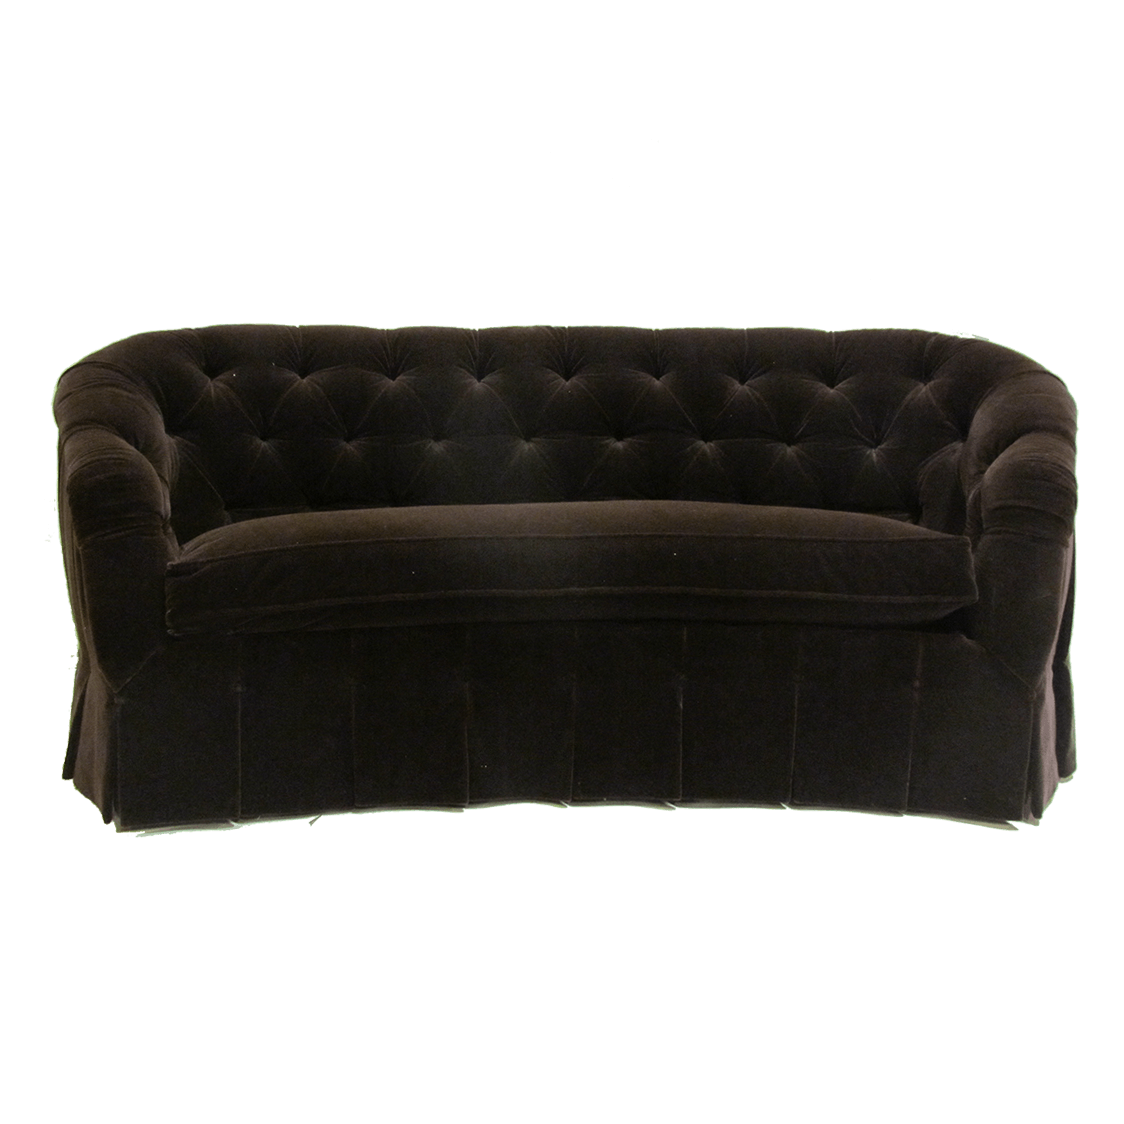 Magnificent Peyton Curved Tufted Sofa Home Interior And Landscaping Ologienasavecom